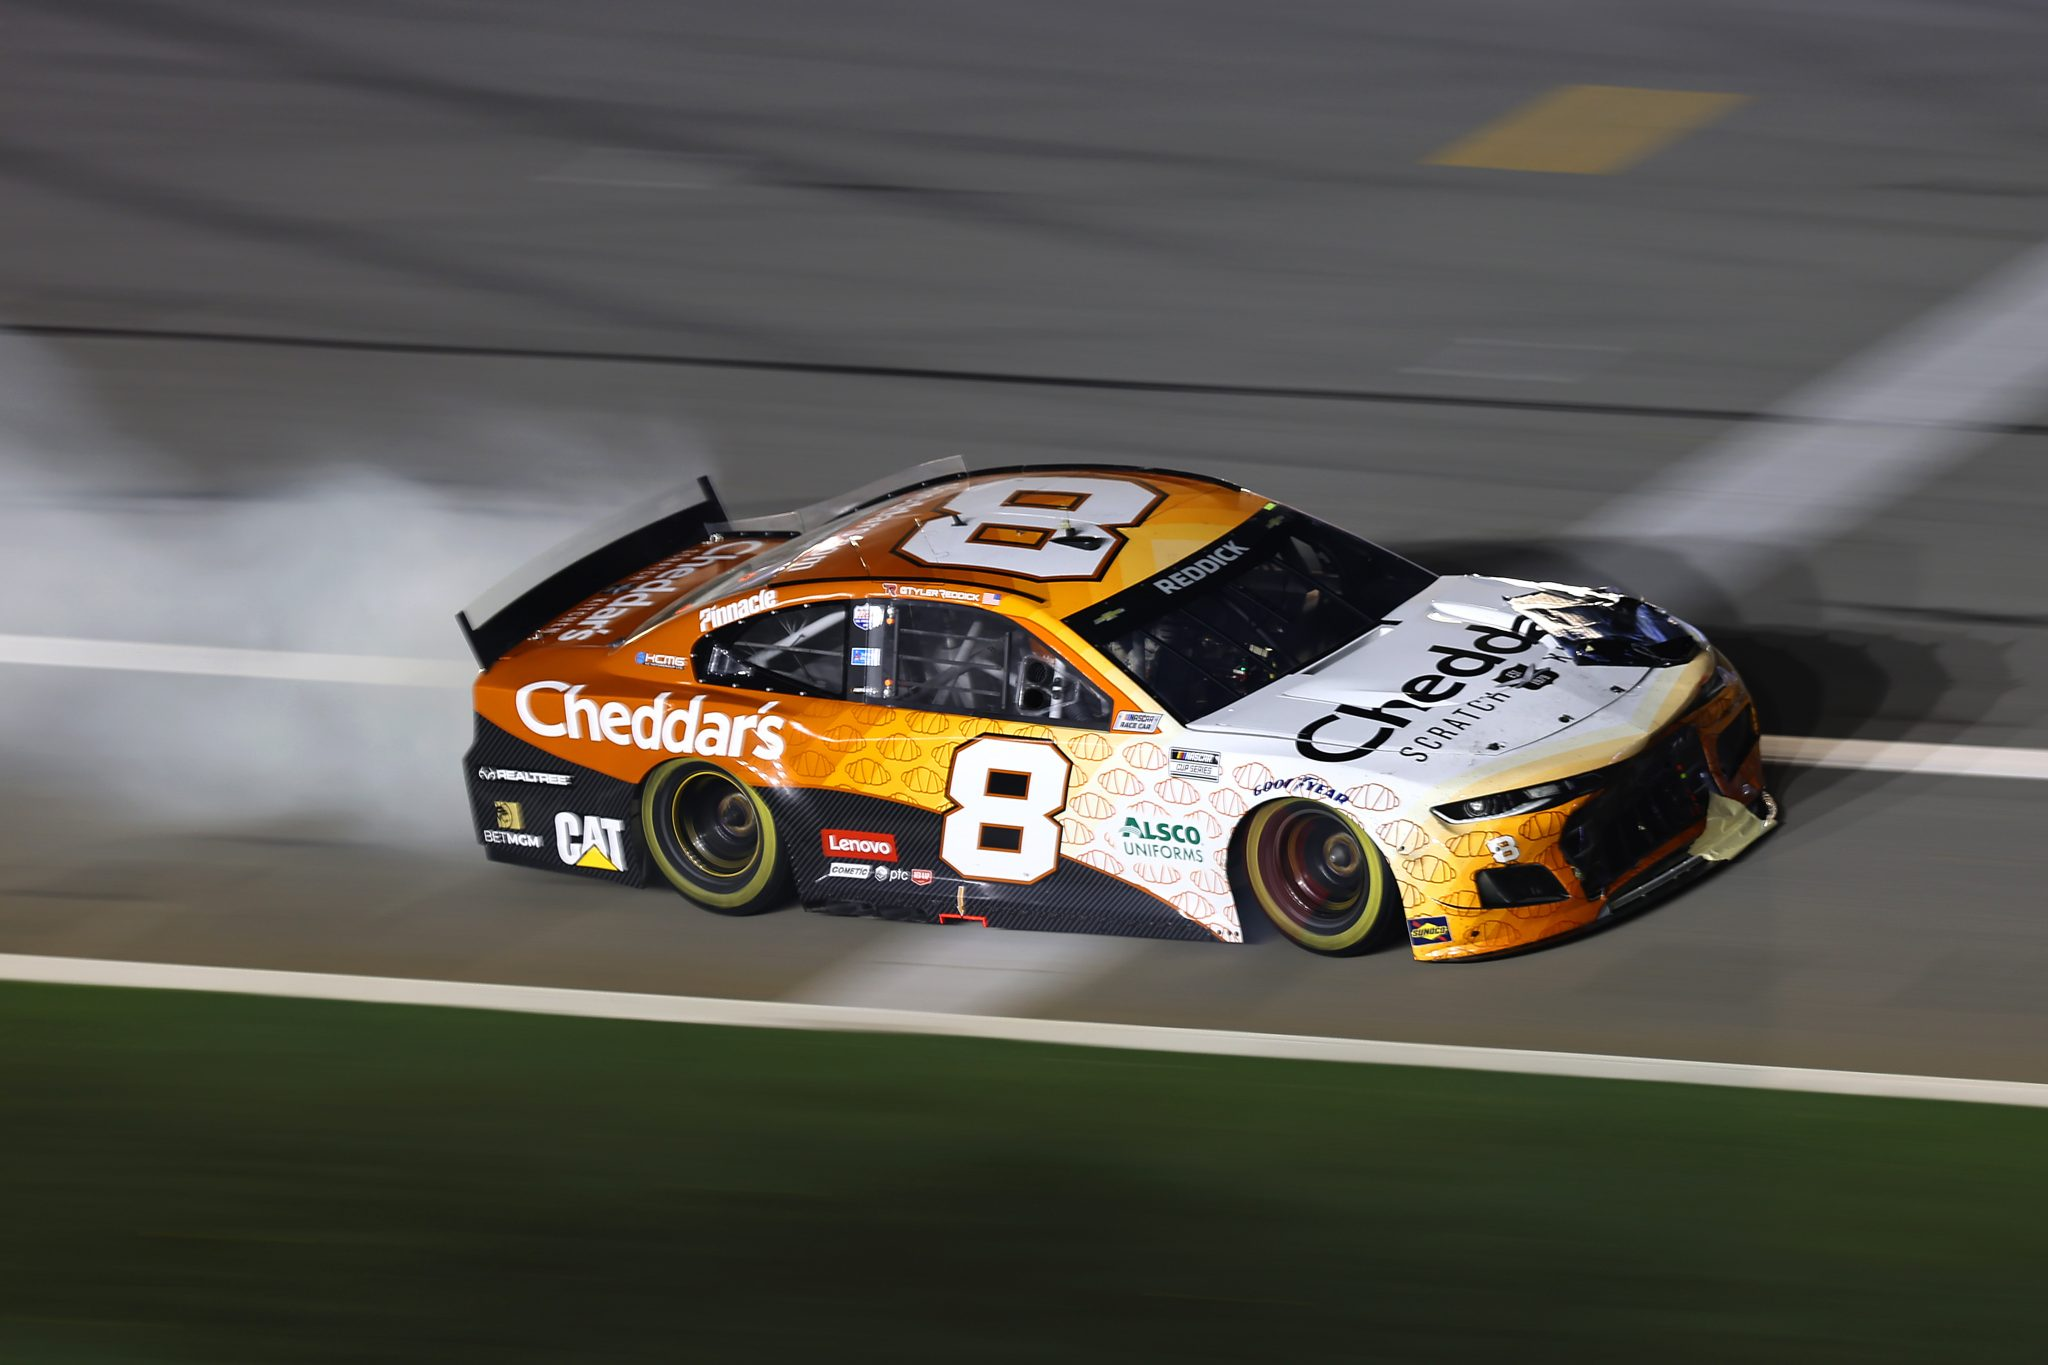 DAYTONA BEACH, FLORIDA - AUGUST 28: Tyler Reddick, driver of the #8 Cheddar's Scratch Kitchen Chevrolet, drives with a trail of smoke during the NASCAR Cup Series Coke Zero Sugar 400 at Daytona International Speedway on August 28, 2021 in Daytona Beach, Florida. (Photo by James Gilbert/Getty Images)   Getty Images